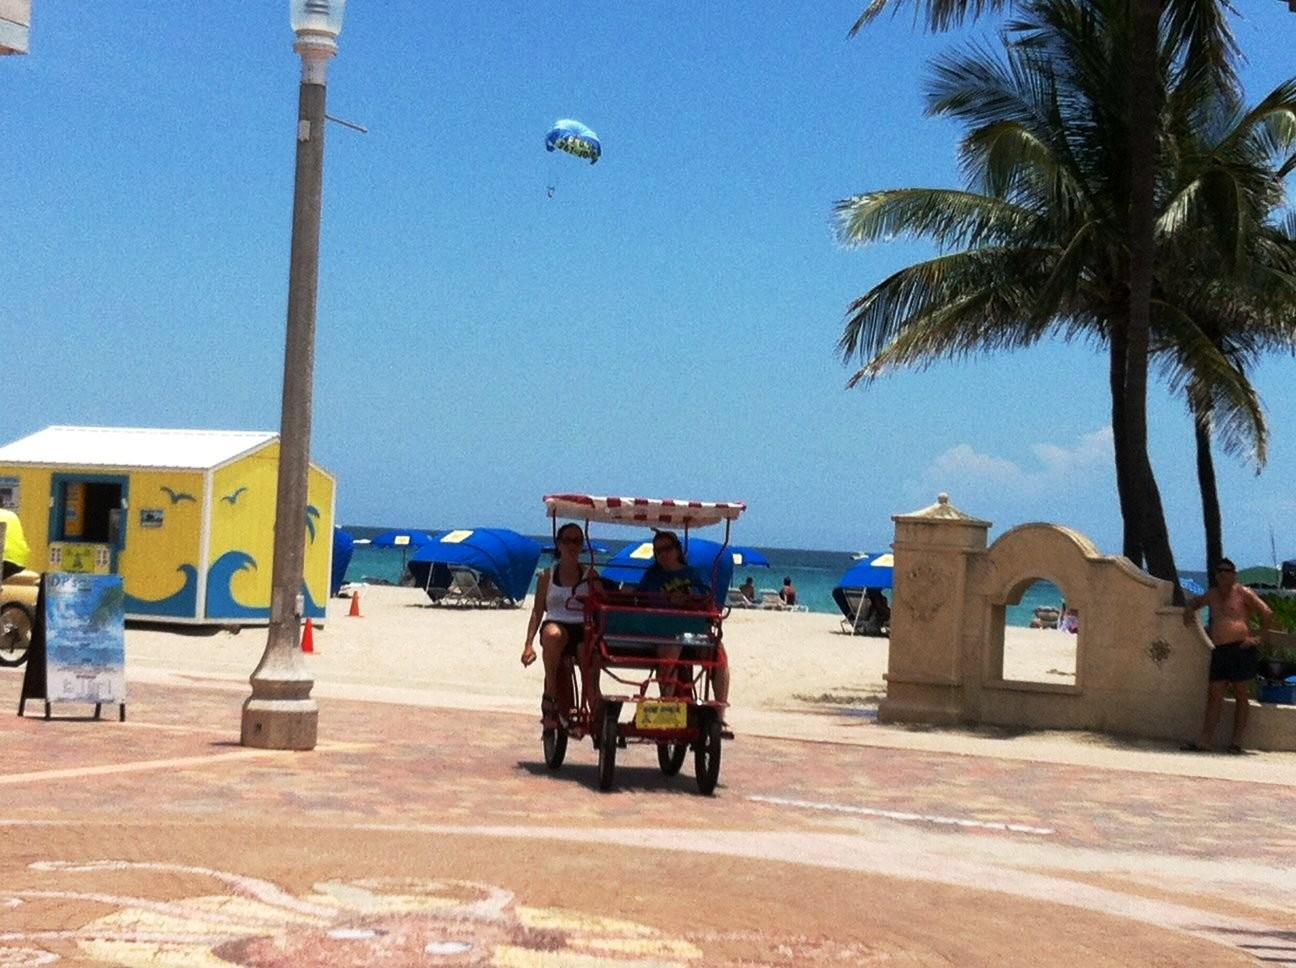 Hollywood Beach, an Oasis of Old Florida with a Progressive